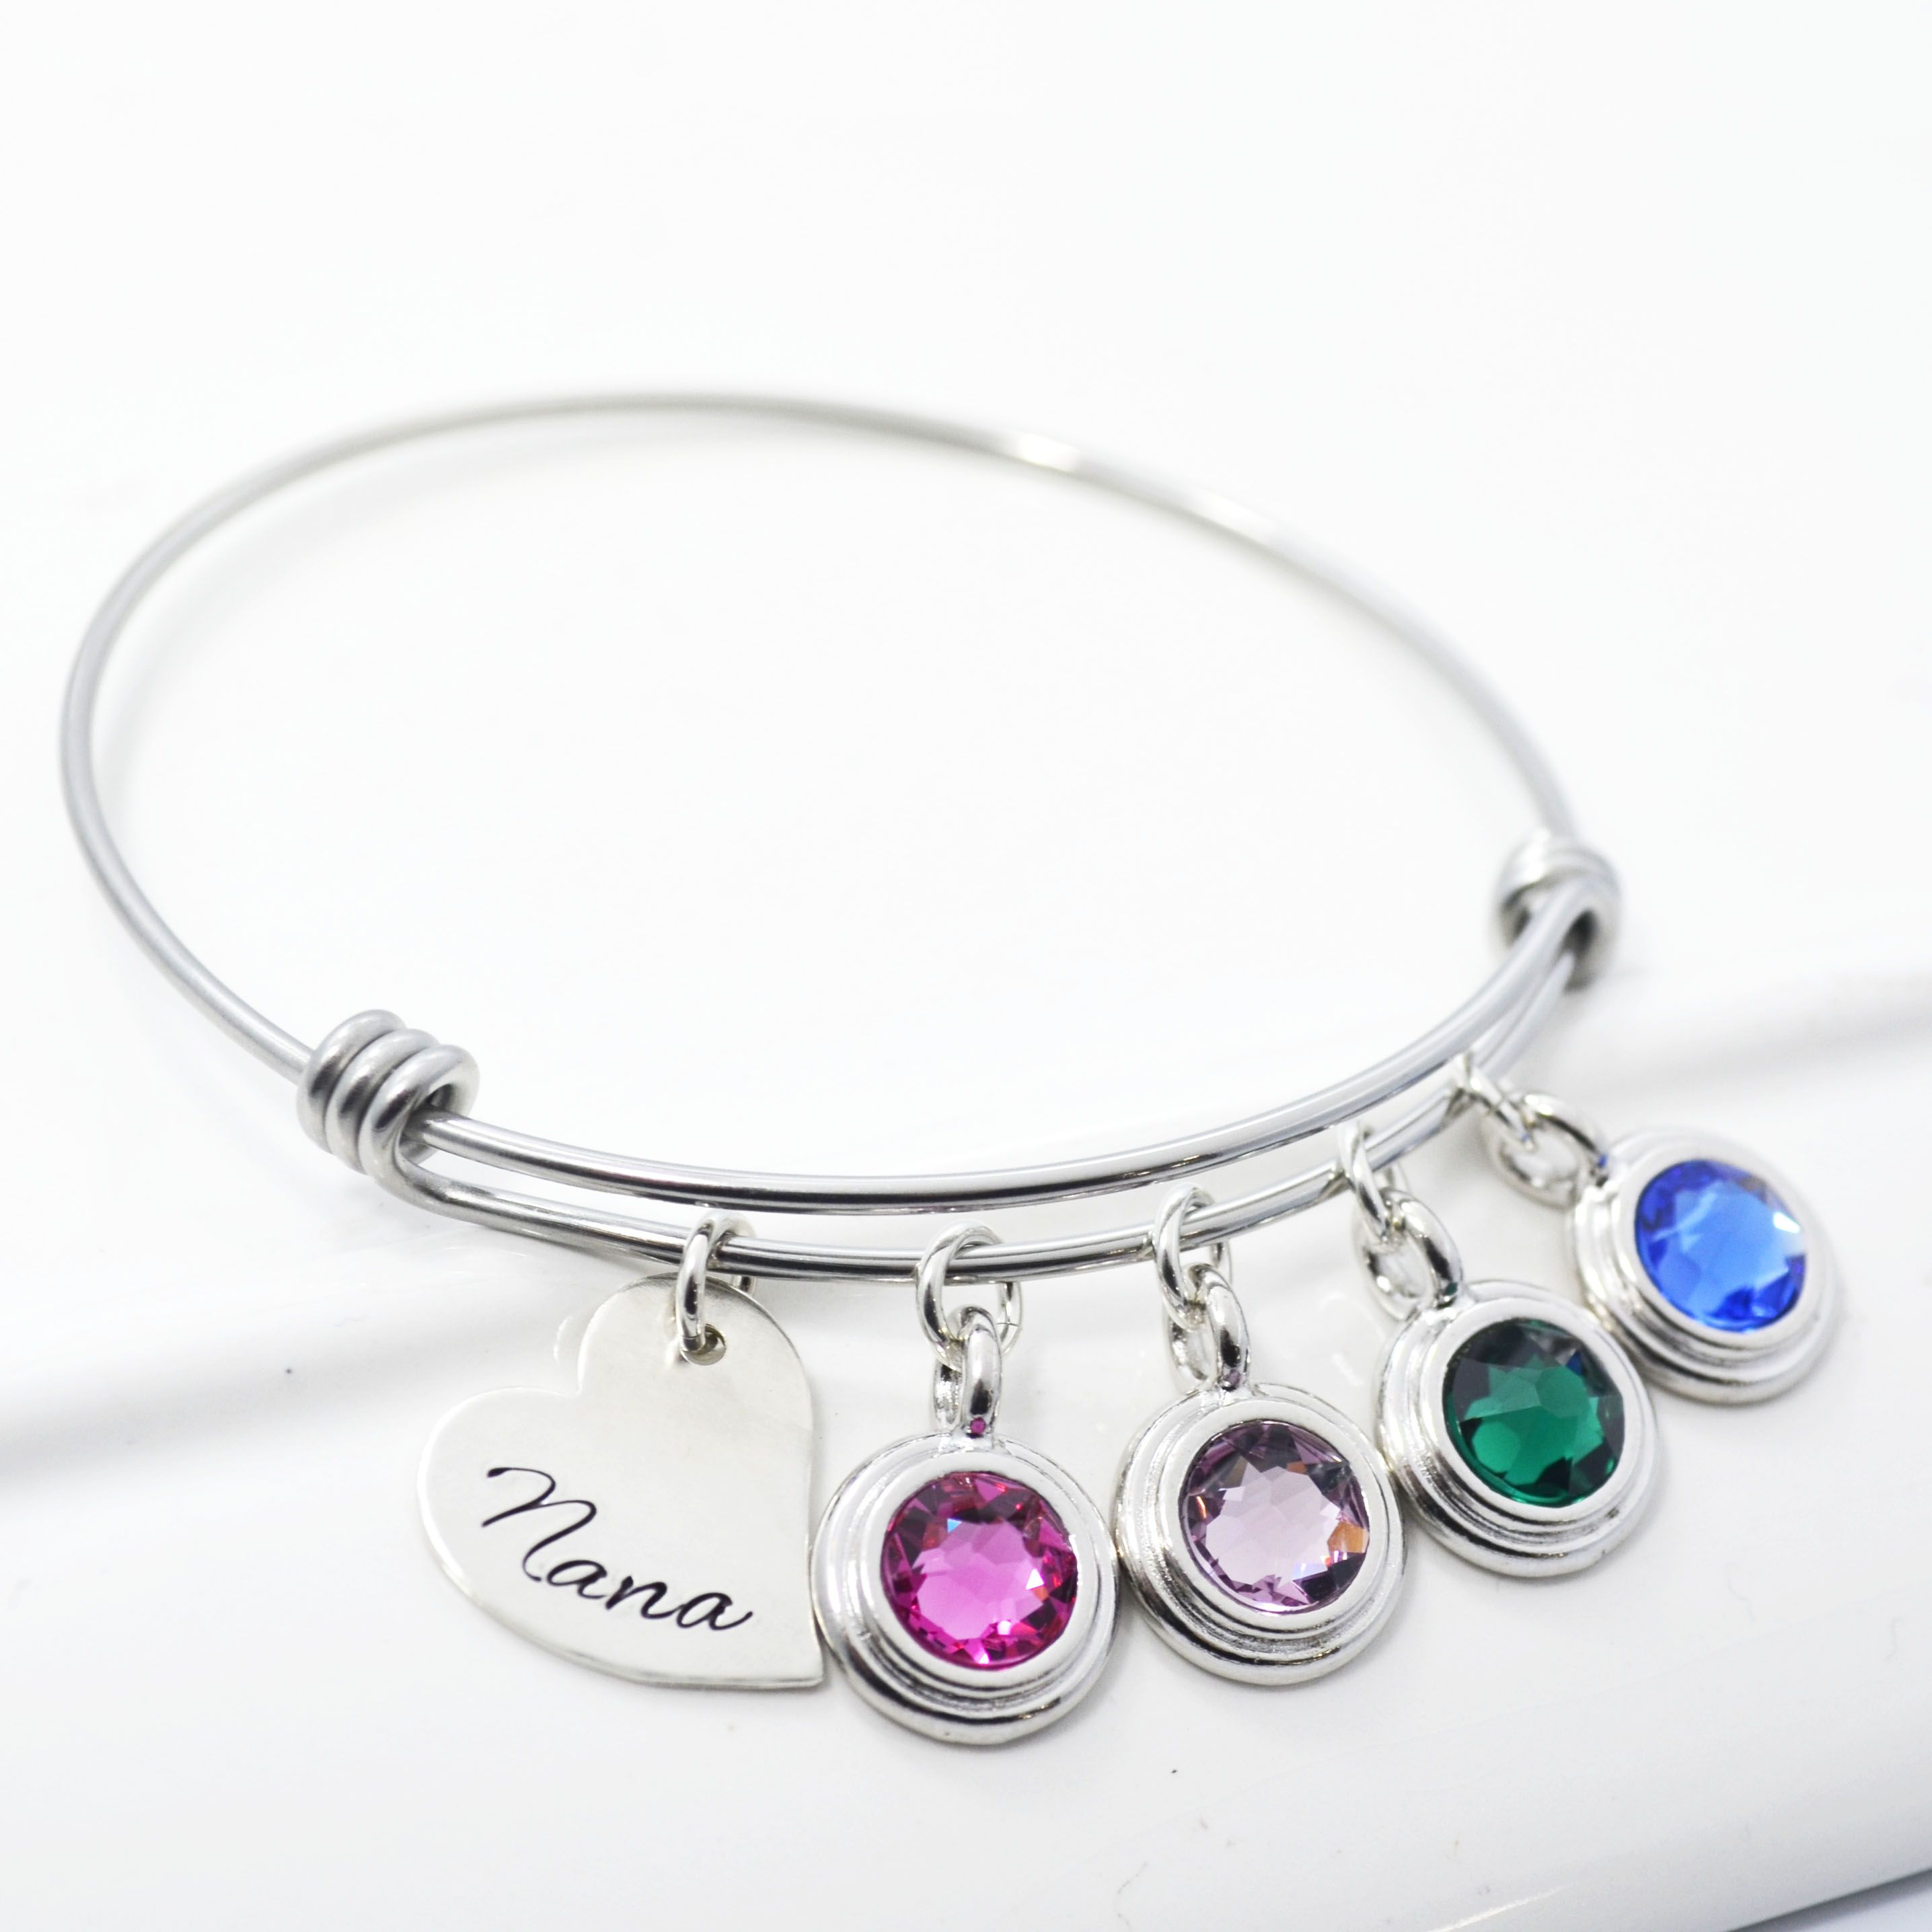 plain hiho bracelet products bangles heart bracelets bangle all with sterling silver flat fob